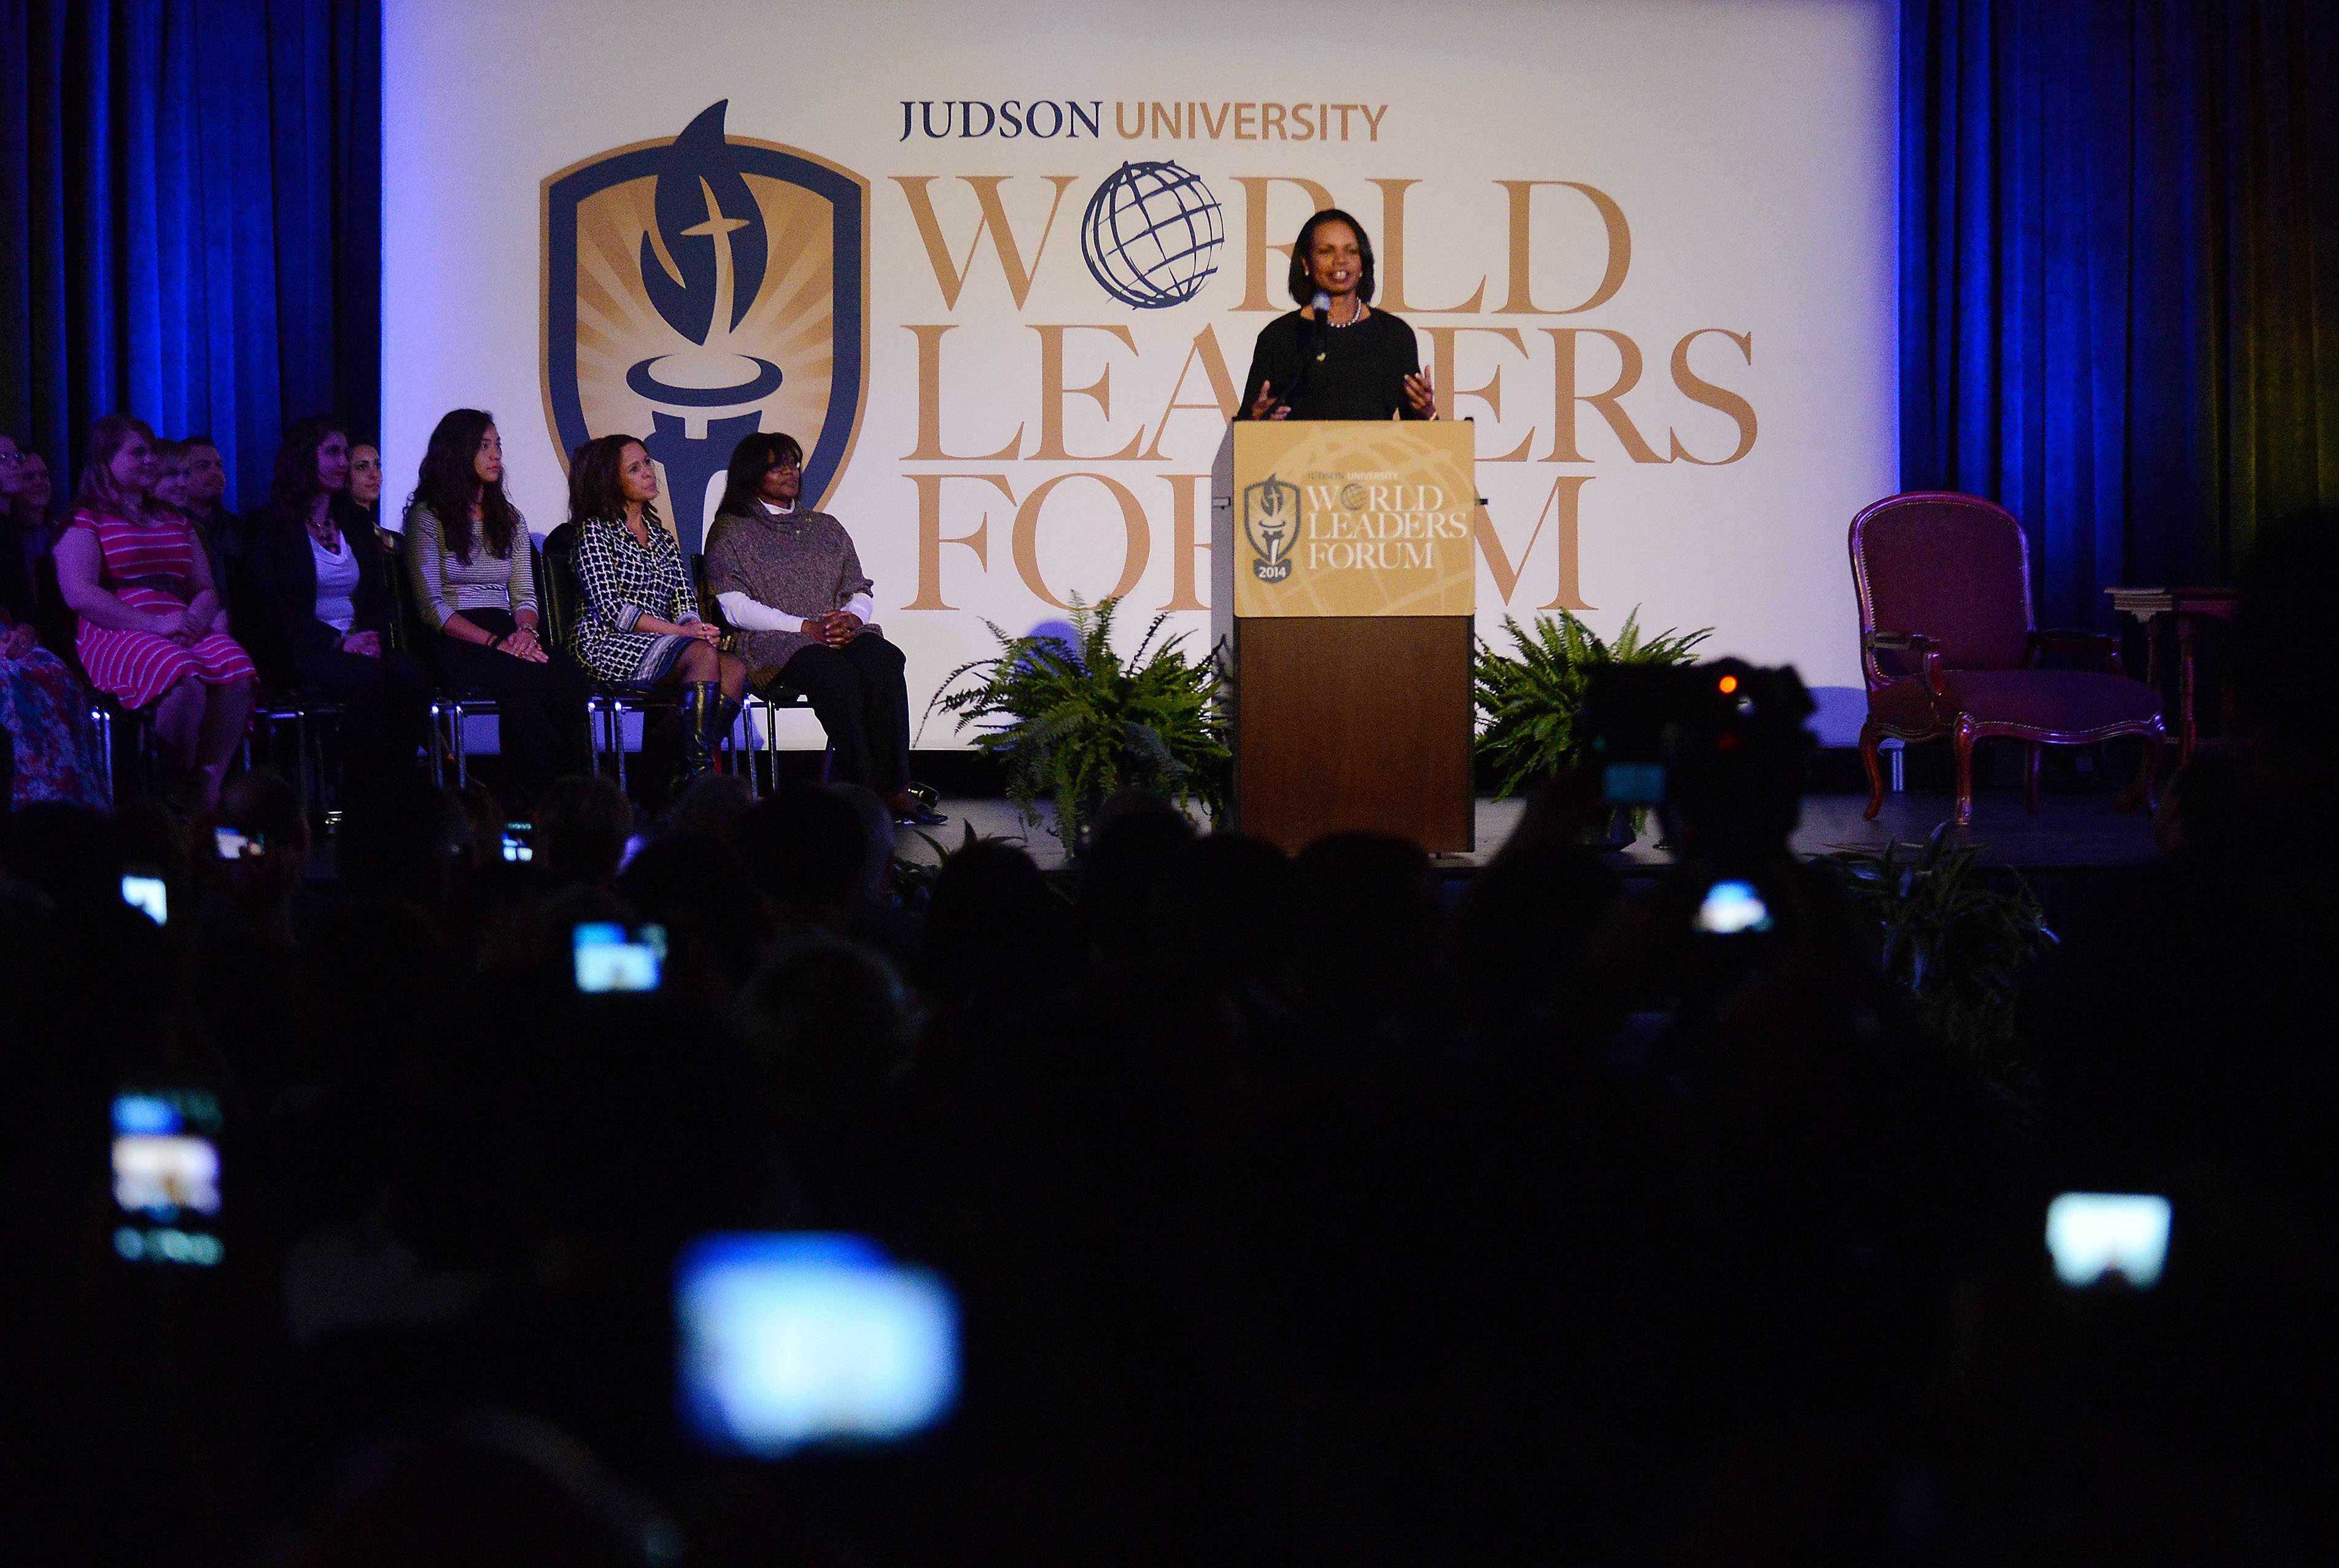 Former Secretary of State Condoleezza Rice spoke about the importance of education, the turmoil in Russia and empowering young girls to become leaders in her speech Wednesday at Judson University's fourth annual World Leaders Forum in Elgin.